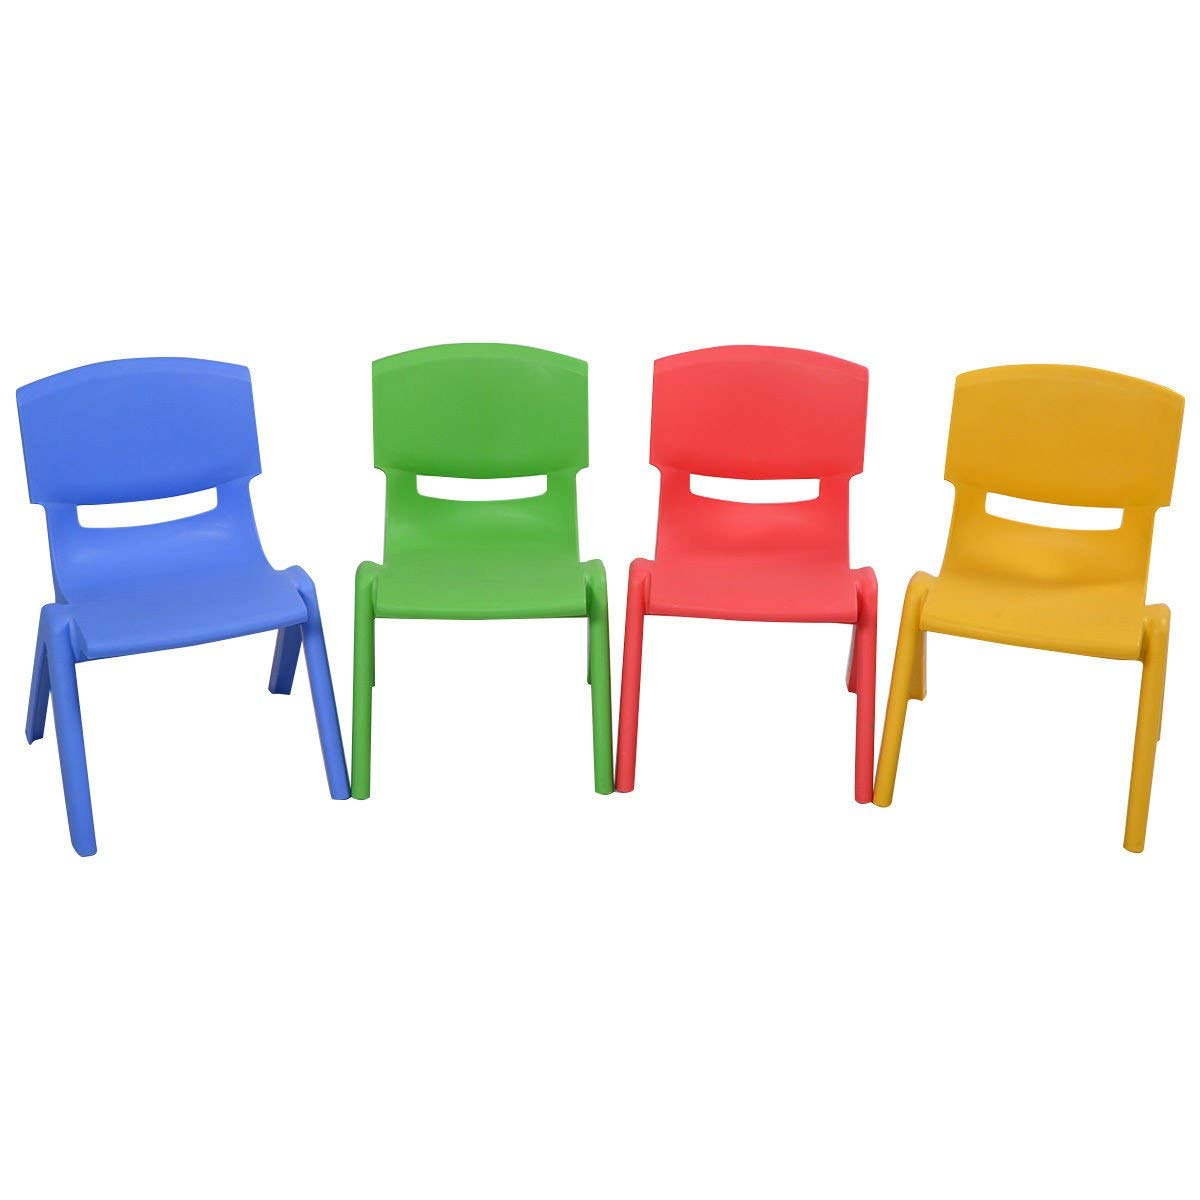 Children's chairs amazon.com: Costzon Kids plastic table, chair, learning and play set, DCDZQKM